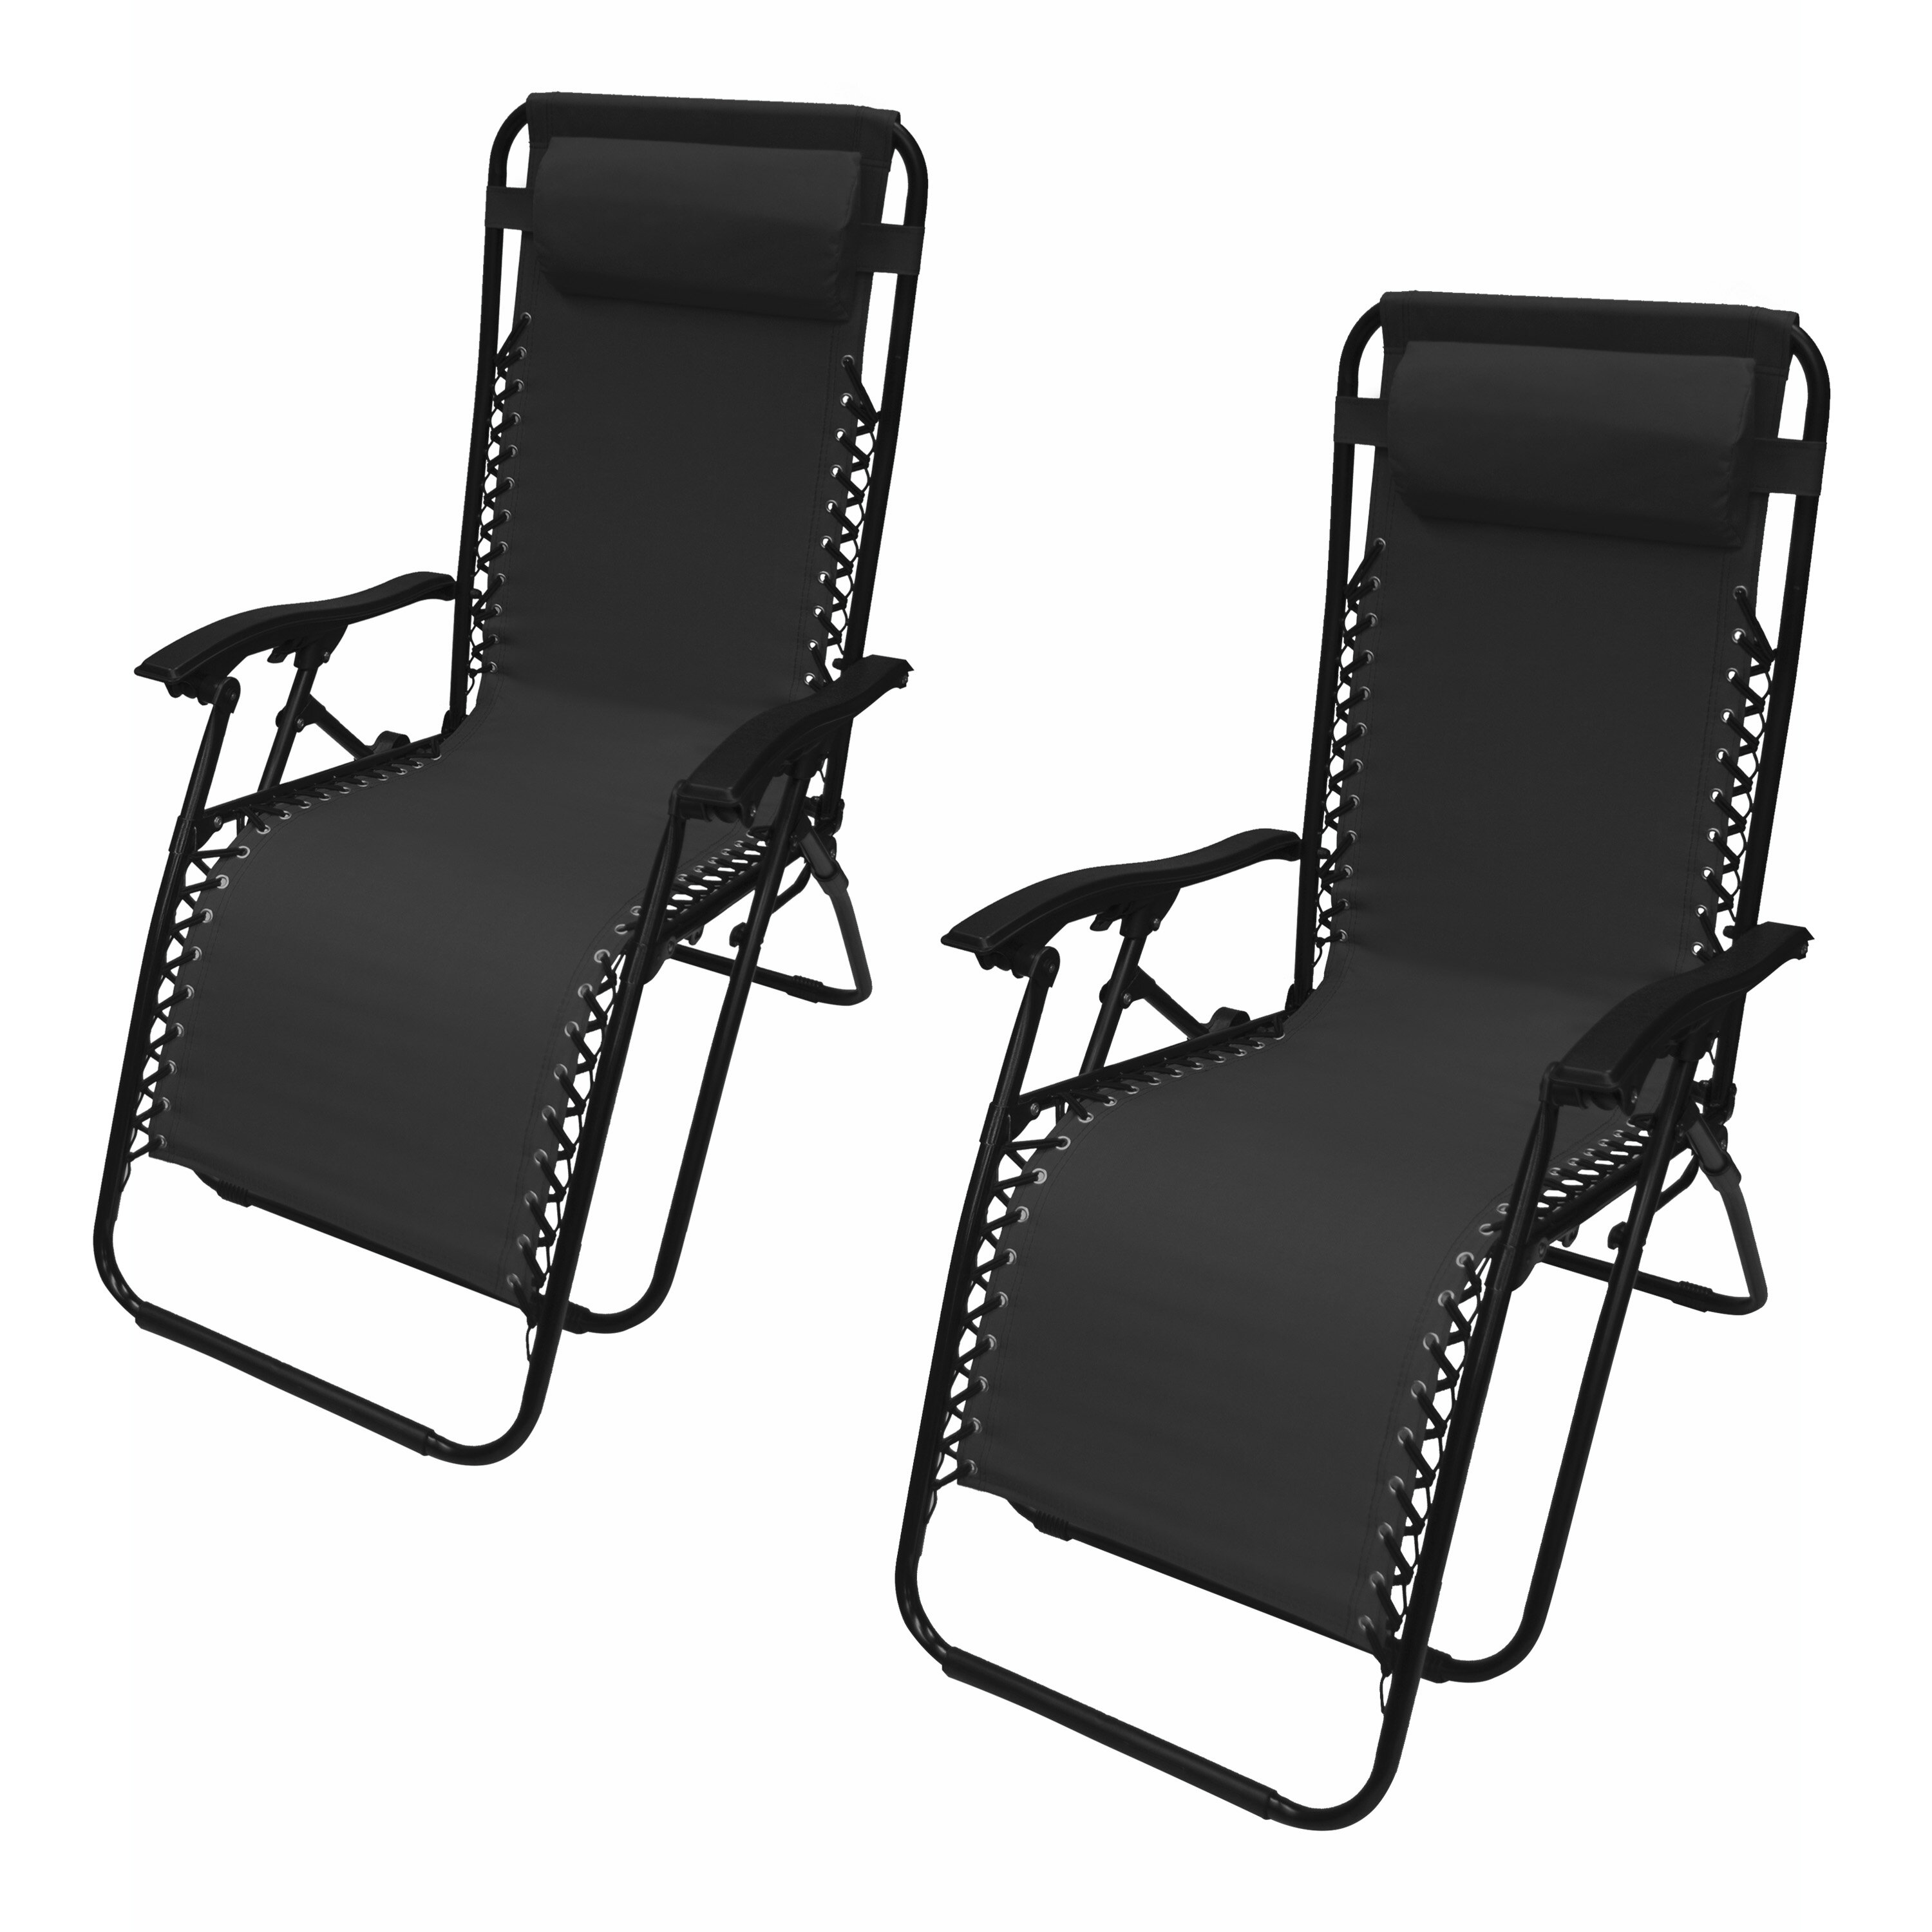 Kaylin reclining zero gravity chair with cushion set of 2